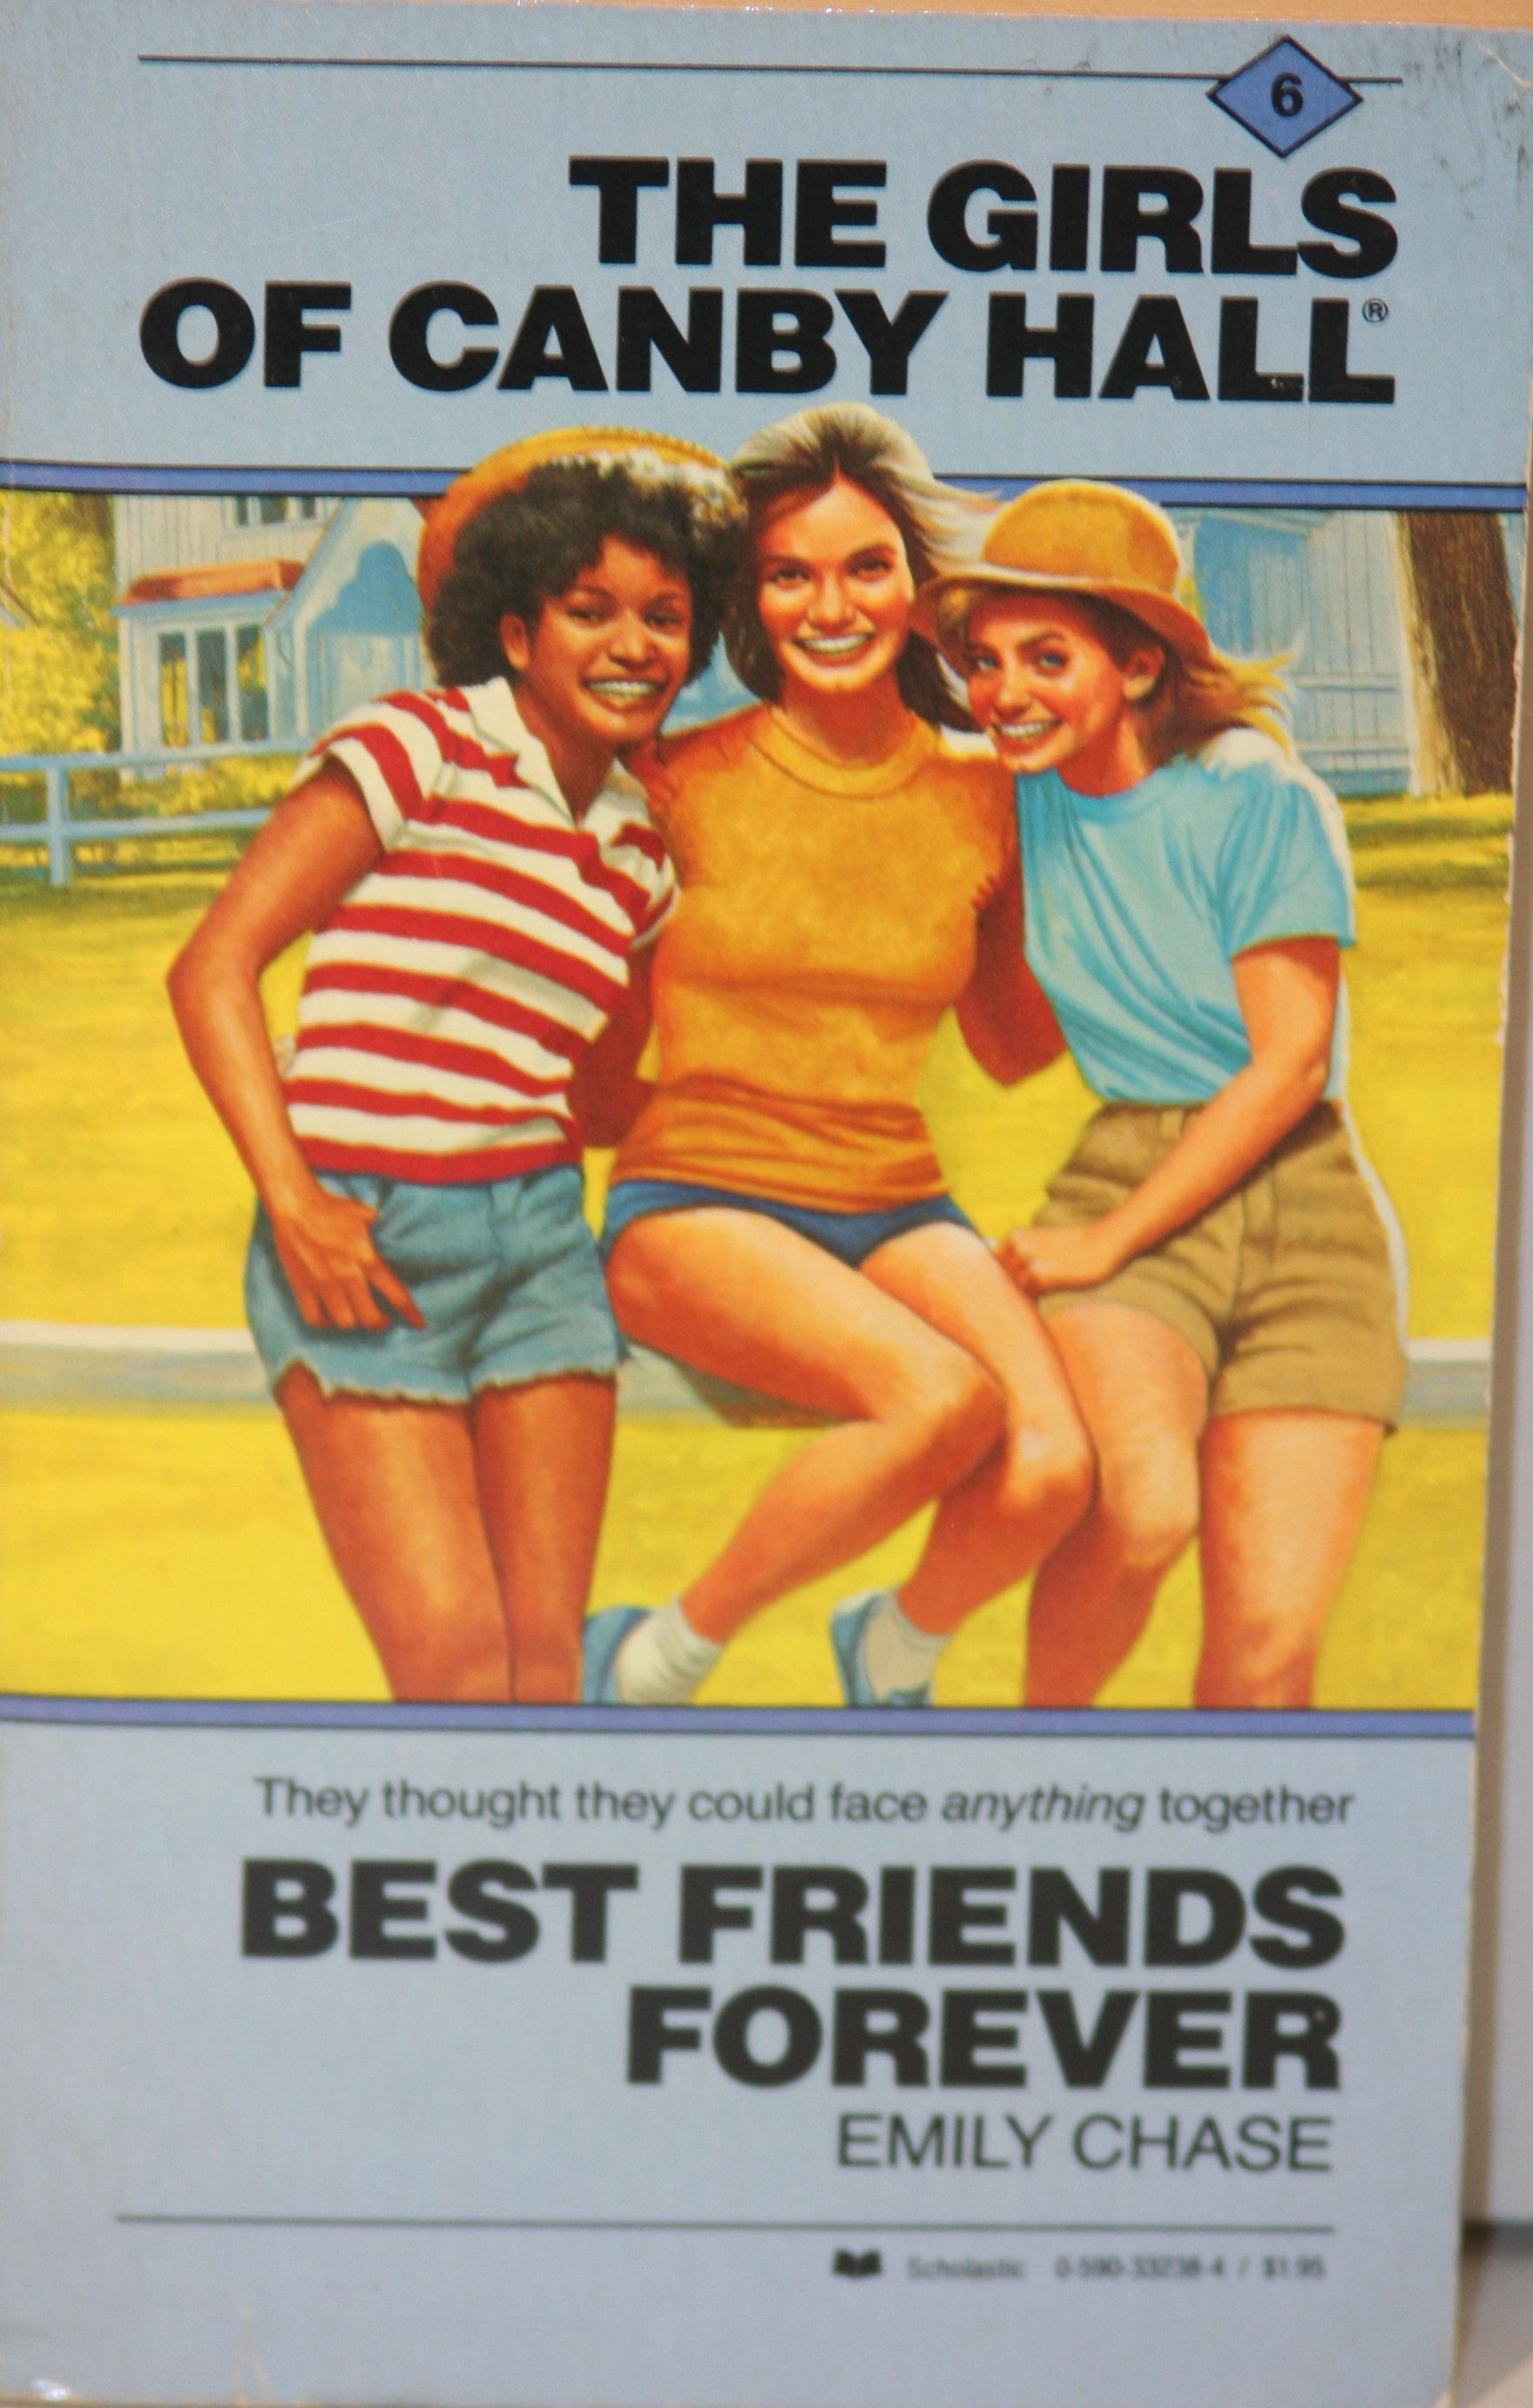 Best Friends Forever (The Girls of Canby Hall #6) by Emily Chase Mass Market Paperback, 188 pages Published September 1st 1984 by Scholastic